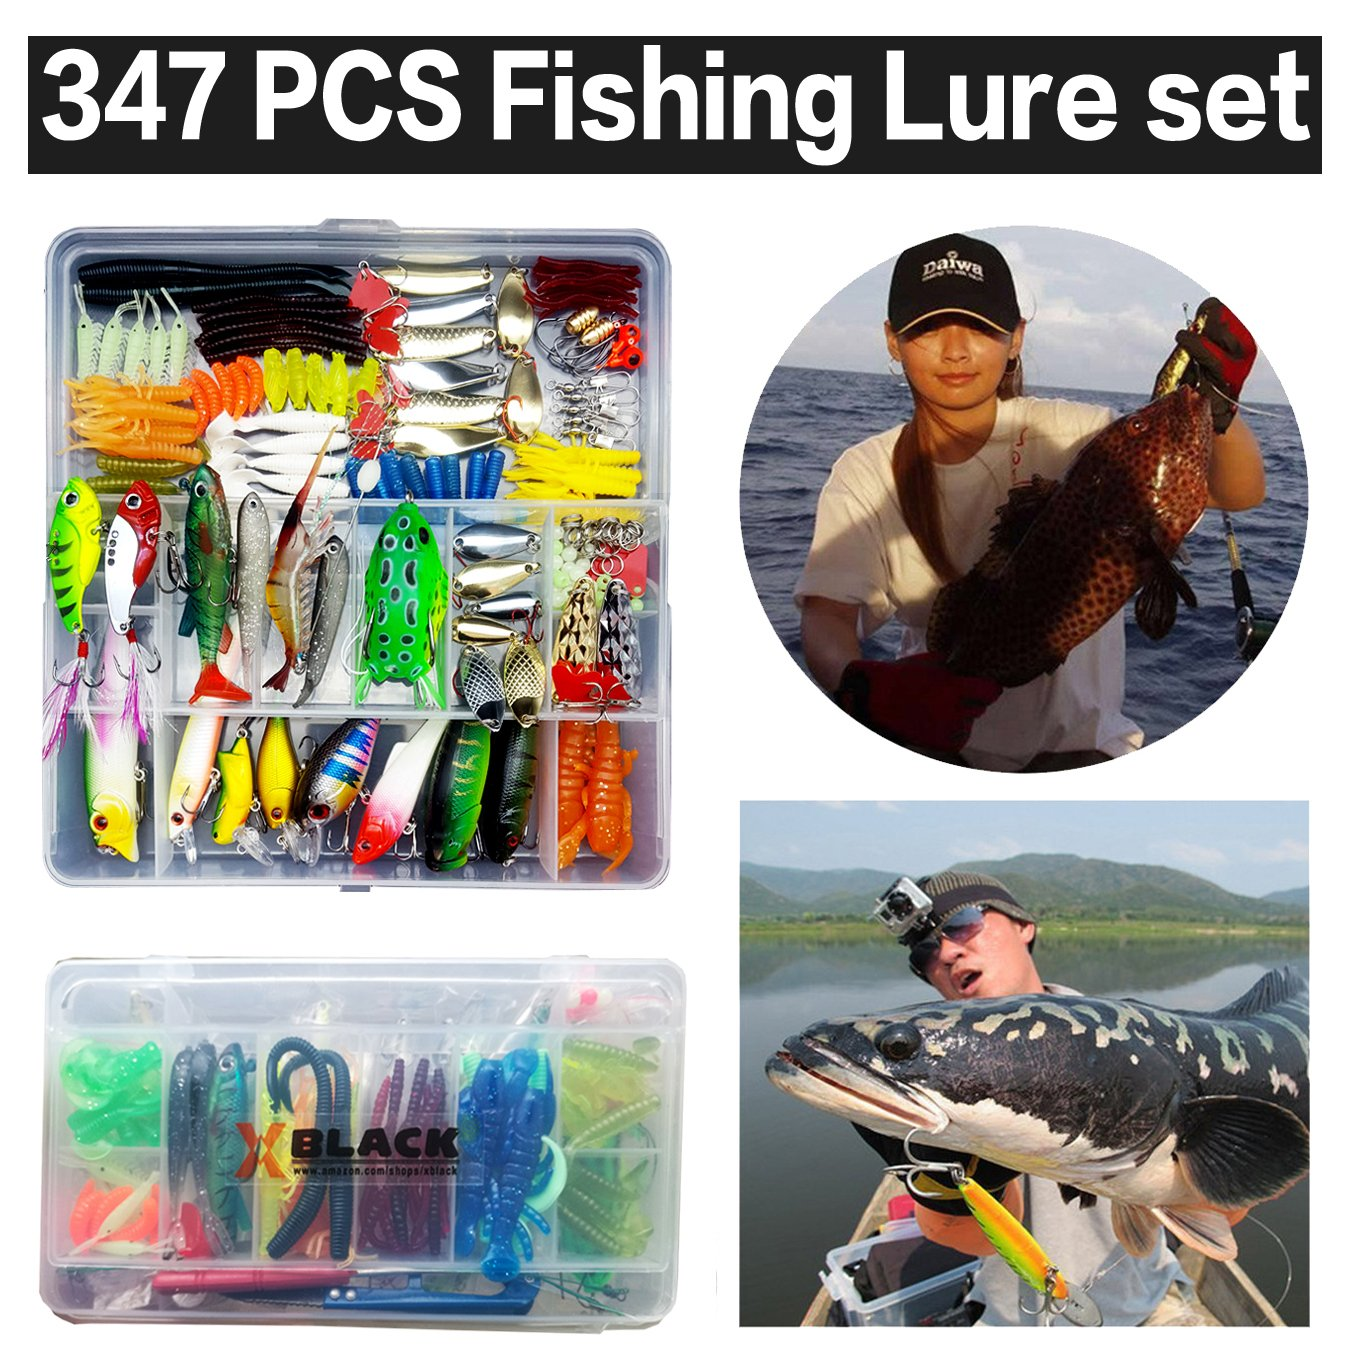 XBLACK Hard Fishing Lure Set 43pcs Assorted Bass Fishing Lure Kit Colorful Minnow Popper Crank Rattlin VIB Jointed Fishing Lure Set Hard Crankbait Tackle Pack for Saltwater or Freshwater (347pcs) by XBLACK (Image #1)